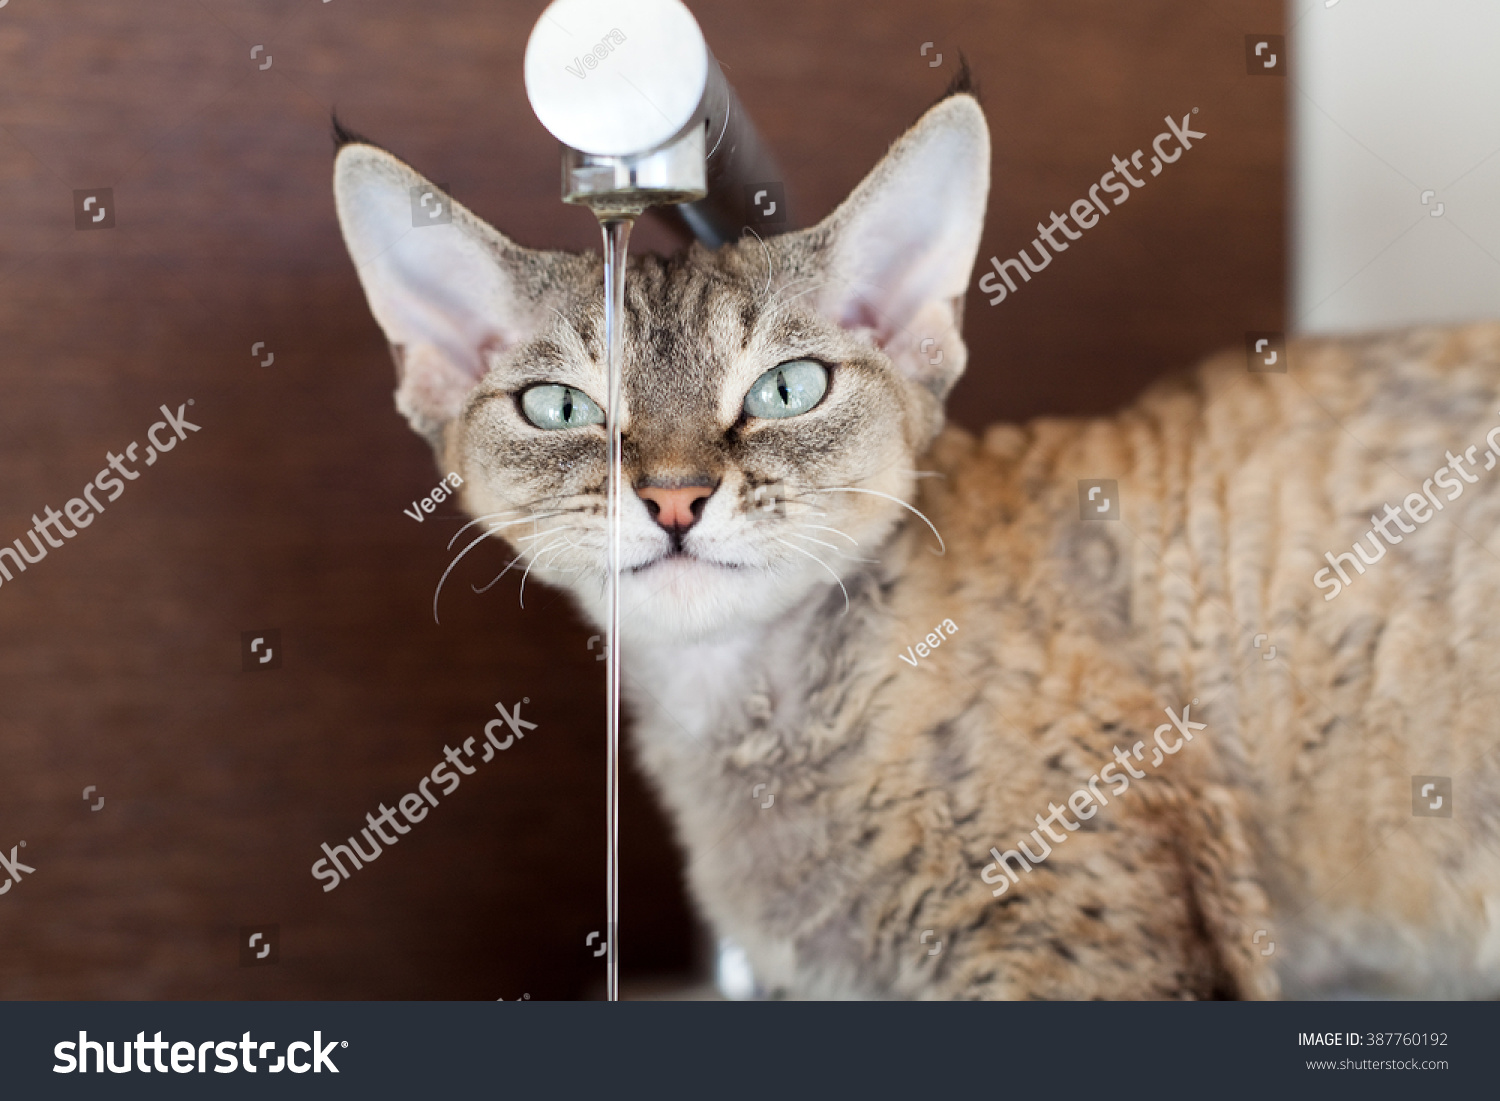 Cat Drinking Fresh Water Faucet Portrait Stock Photo 387760192 ...